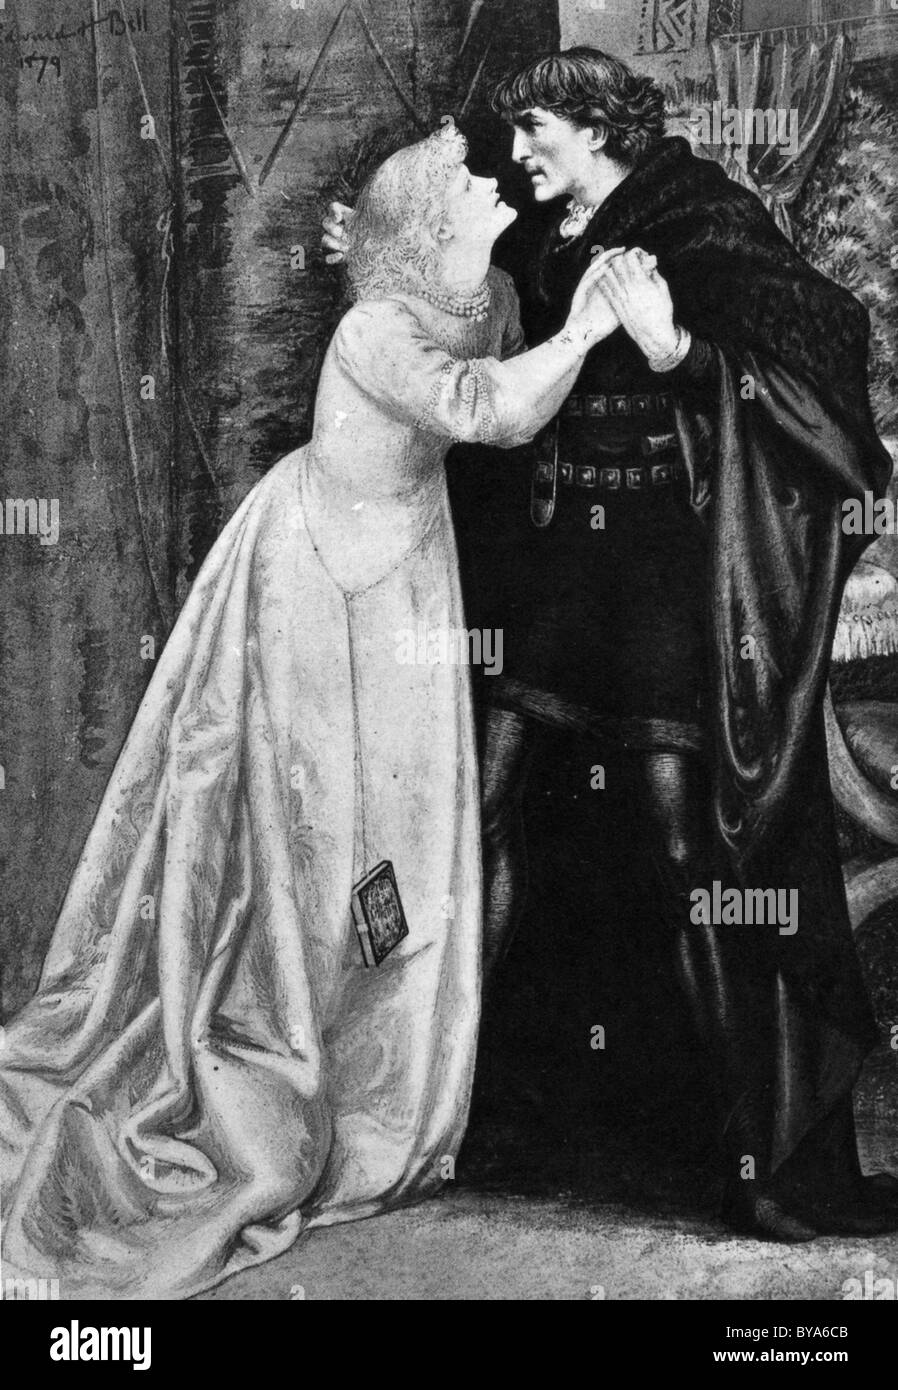 HAMLET played by Henry Irving with Ellen Terry as Ophelia in the 1878 production at the London Lyceum - Stock Image